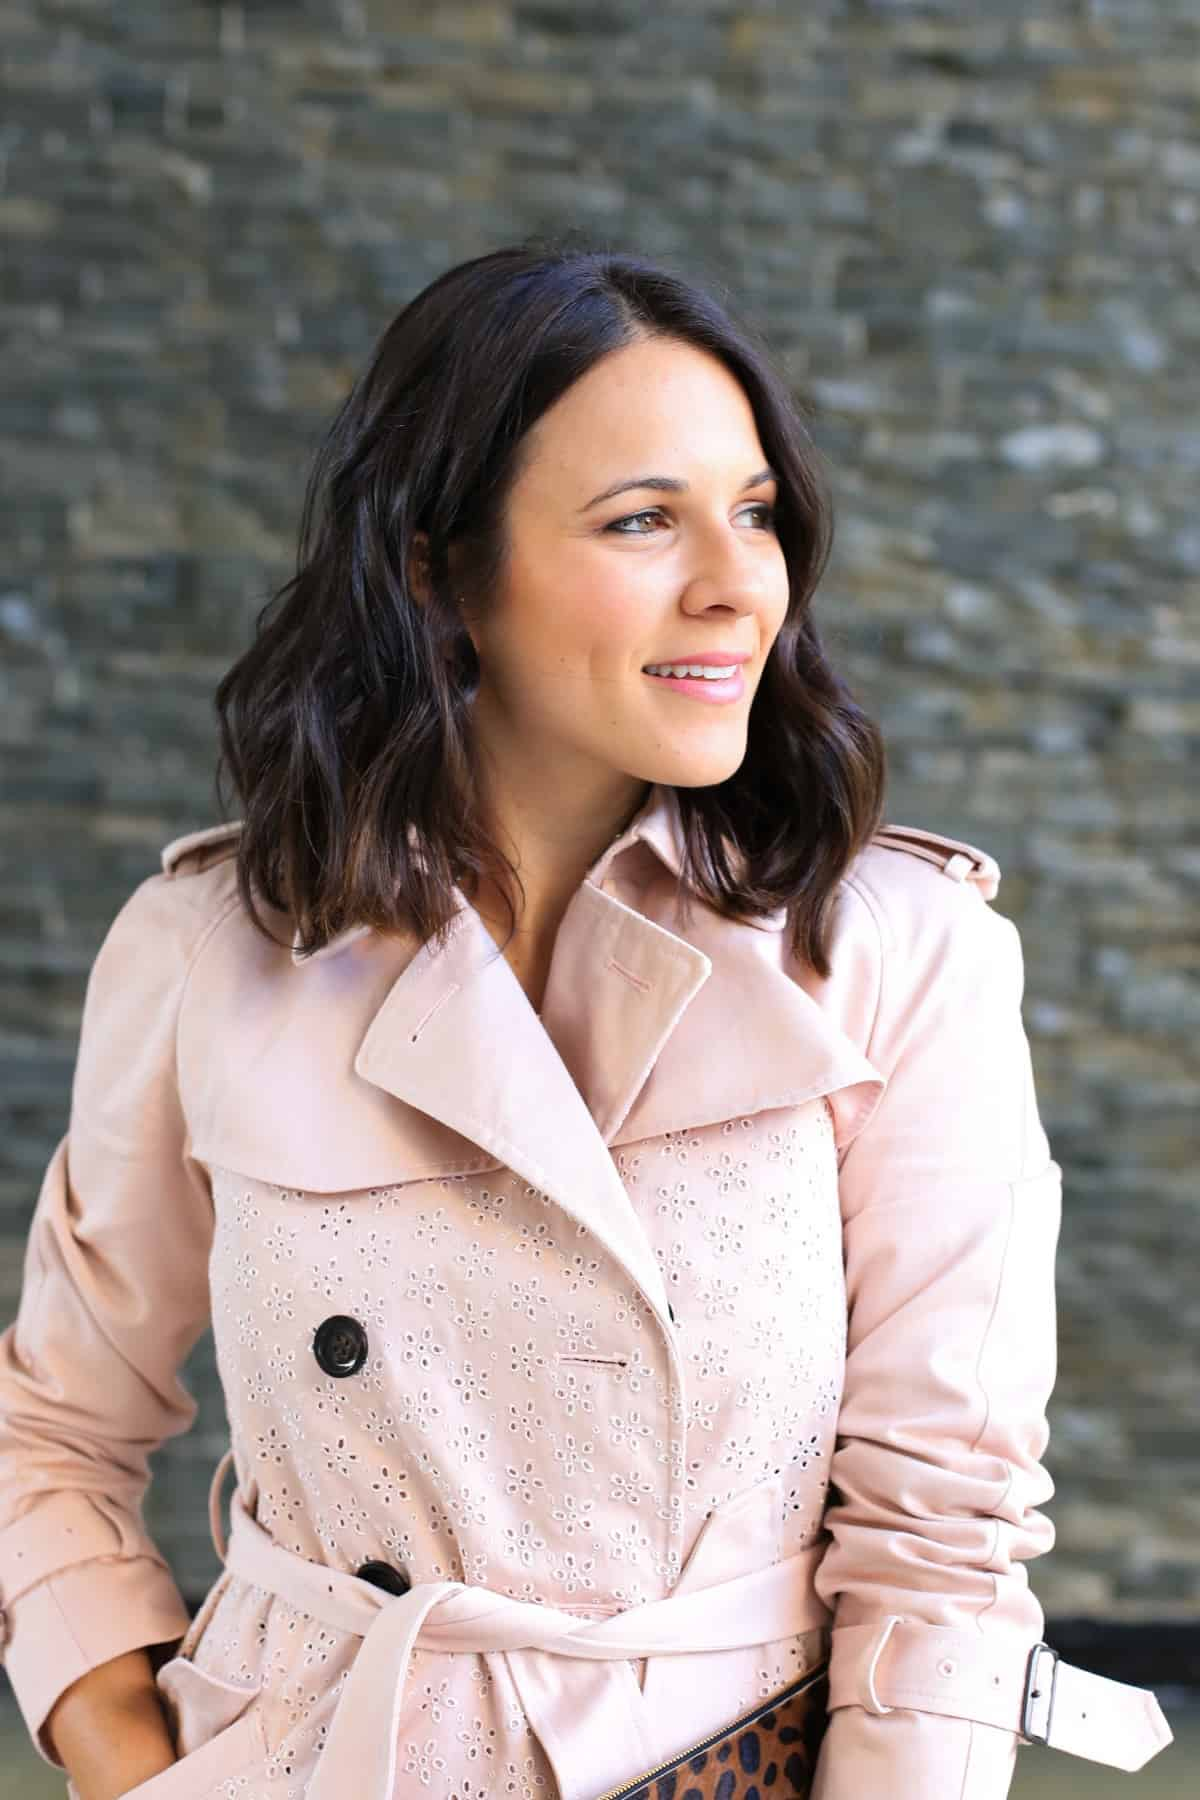 Coach eyelet trench coat, how to style a trench coat for spring - My Style Vita - @mystylevita - 7